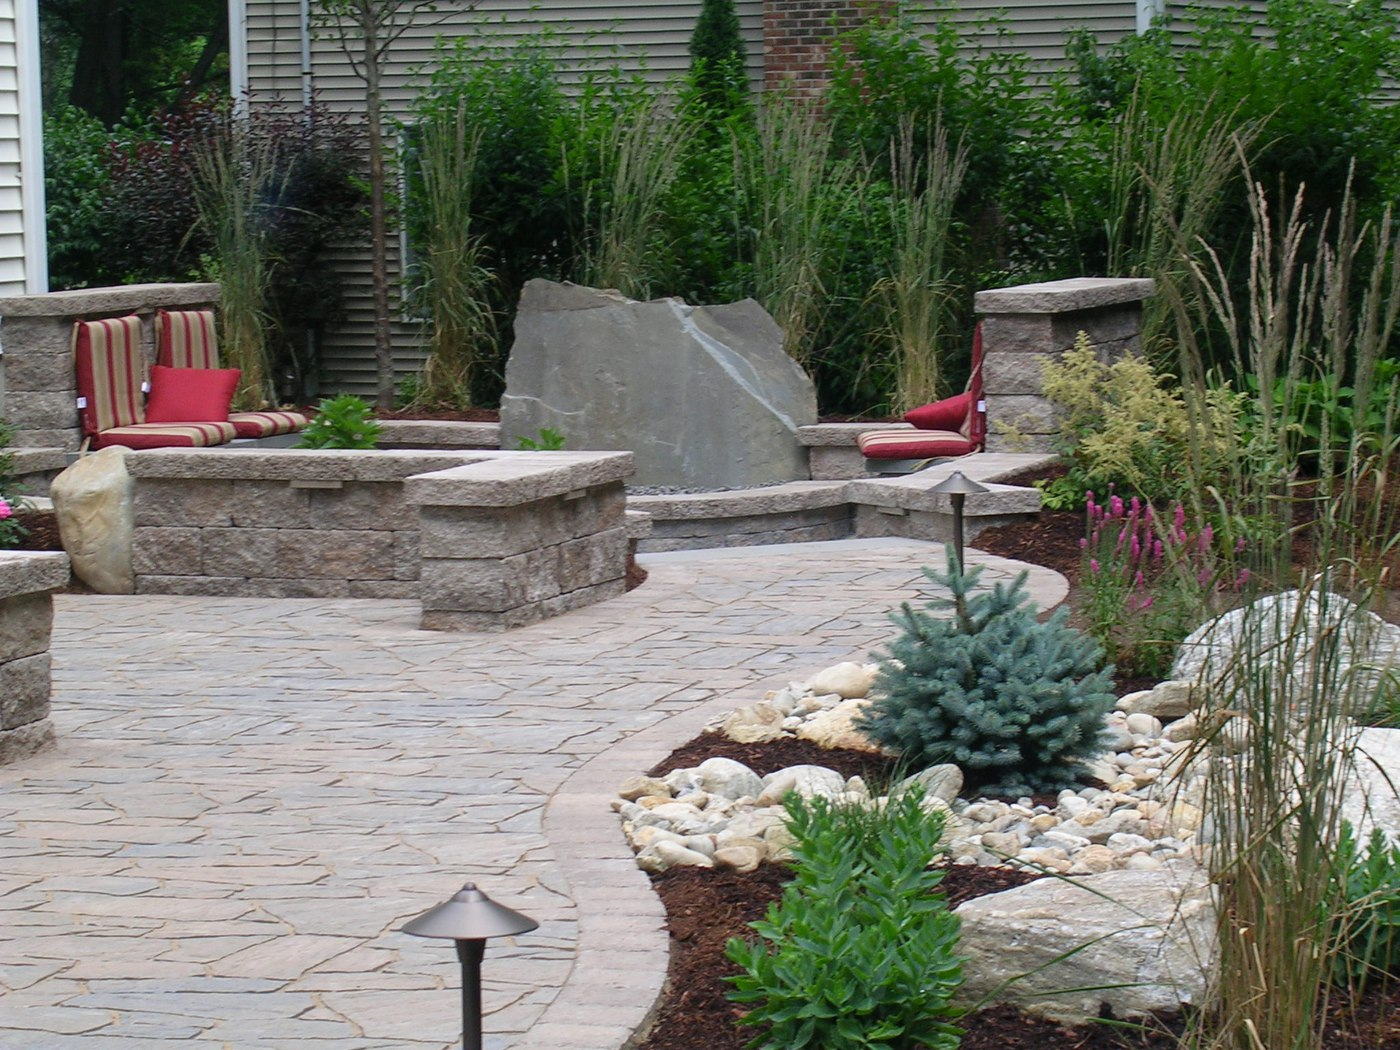 How Much Does A Deck Cost Vs A Paver Patio By Bahler Brothers In CT